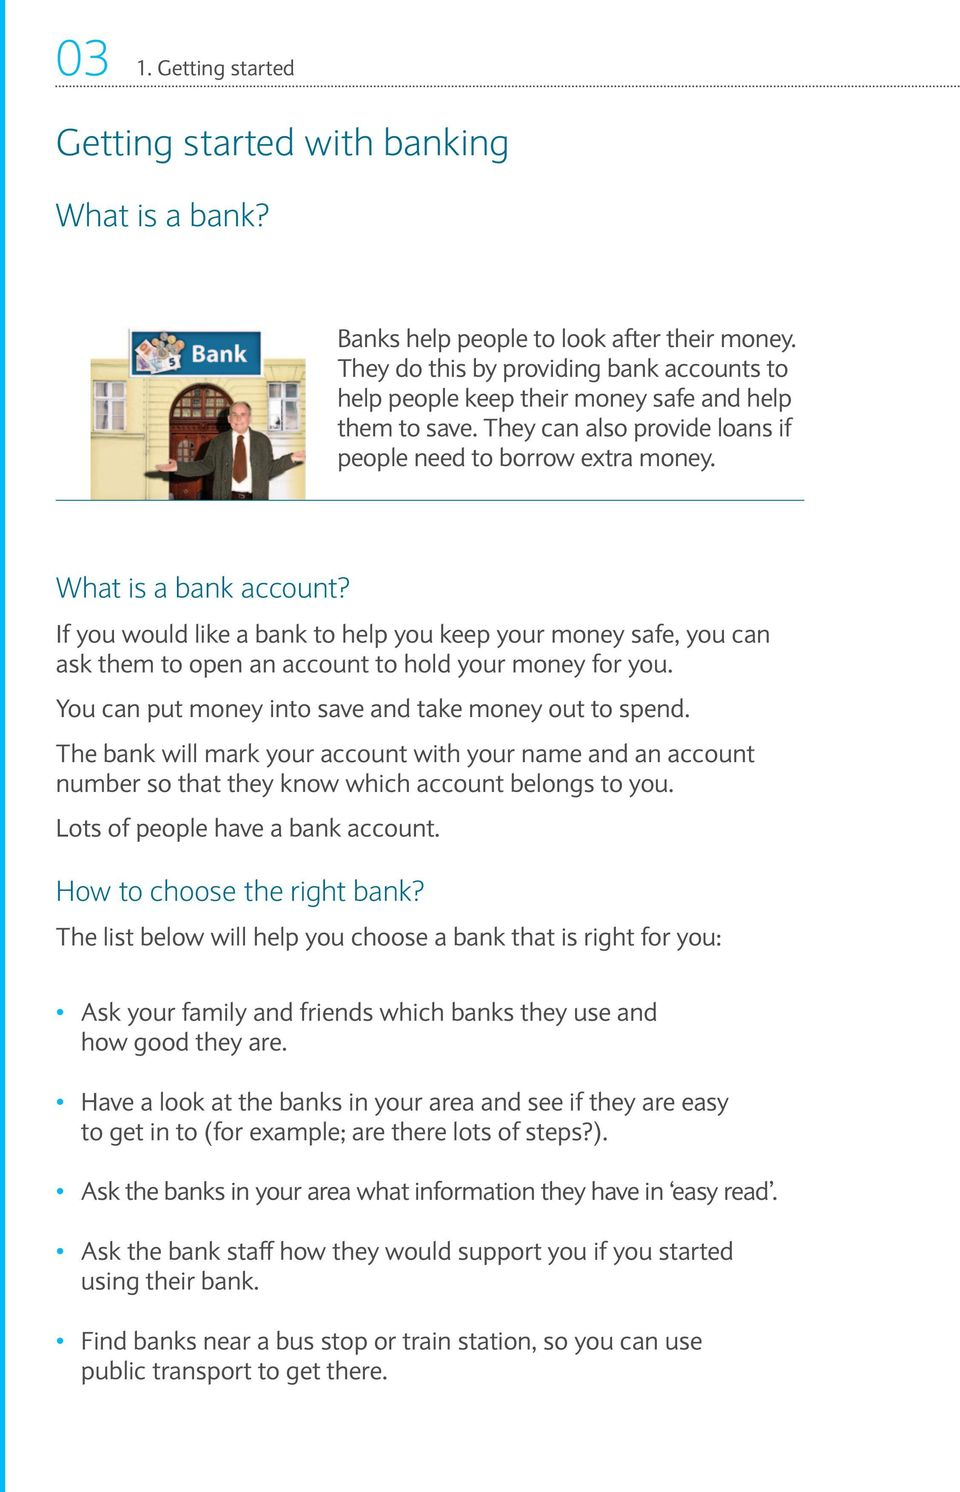 If you would like a bank to help you keep your money safe, you can ask them to open an account to hold your money for you. You can put money into save and take money out to spend.